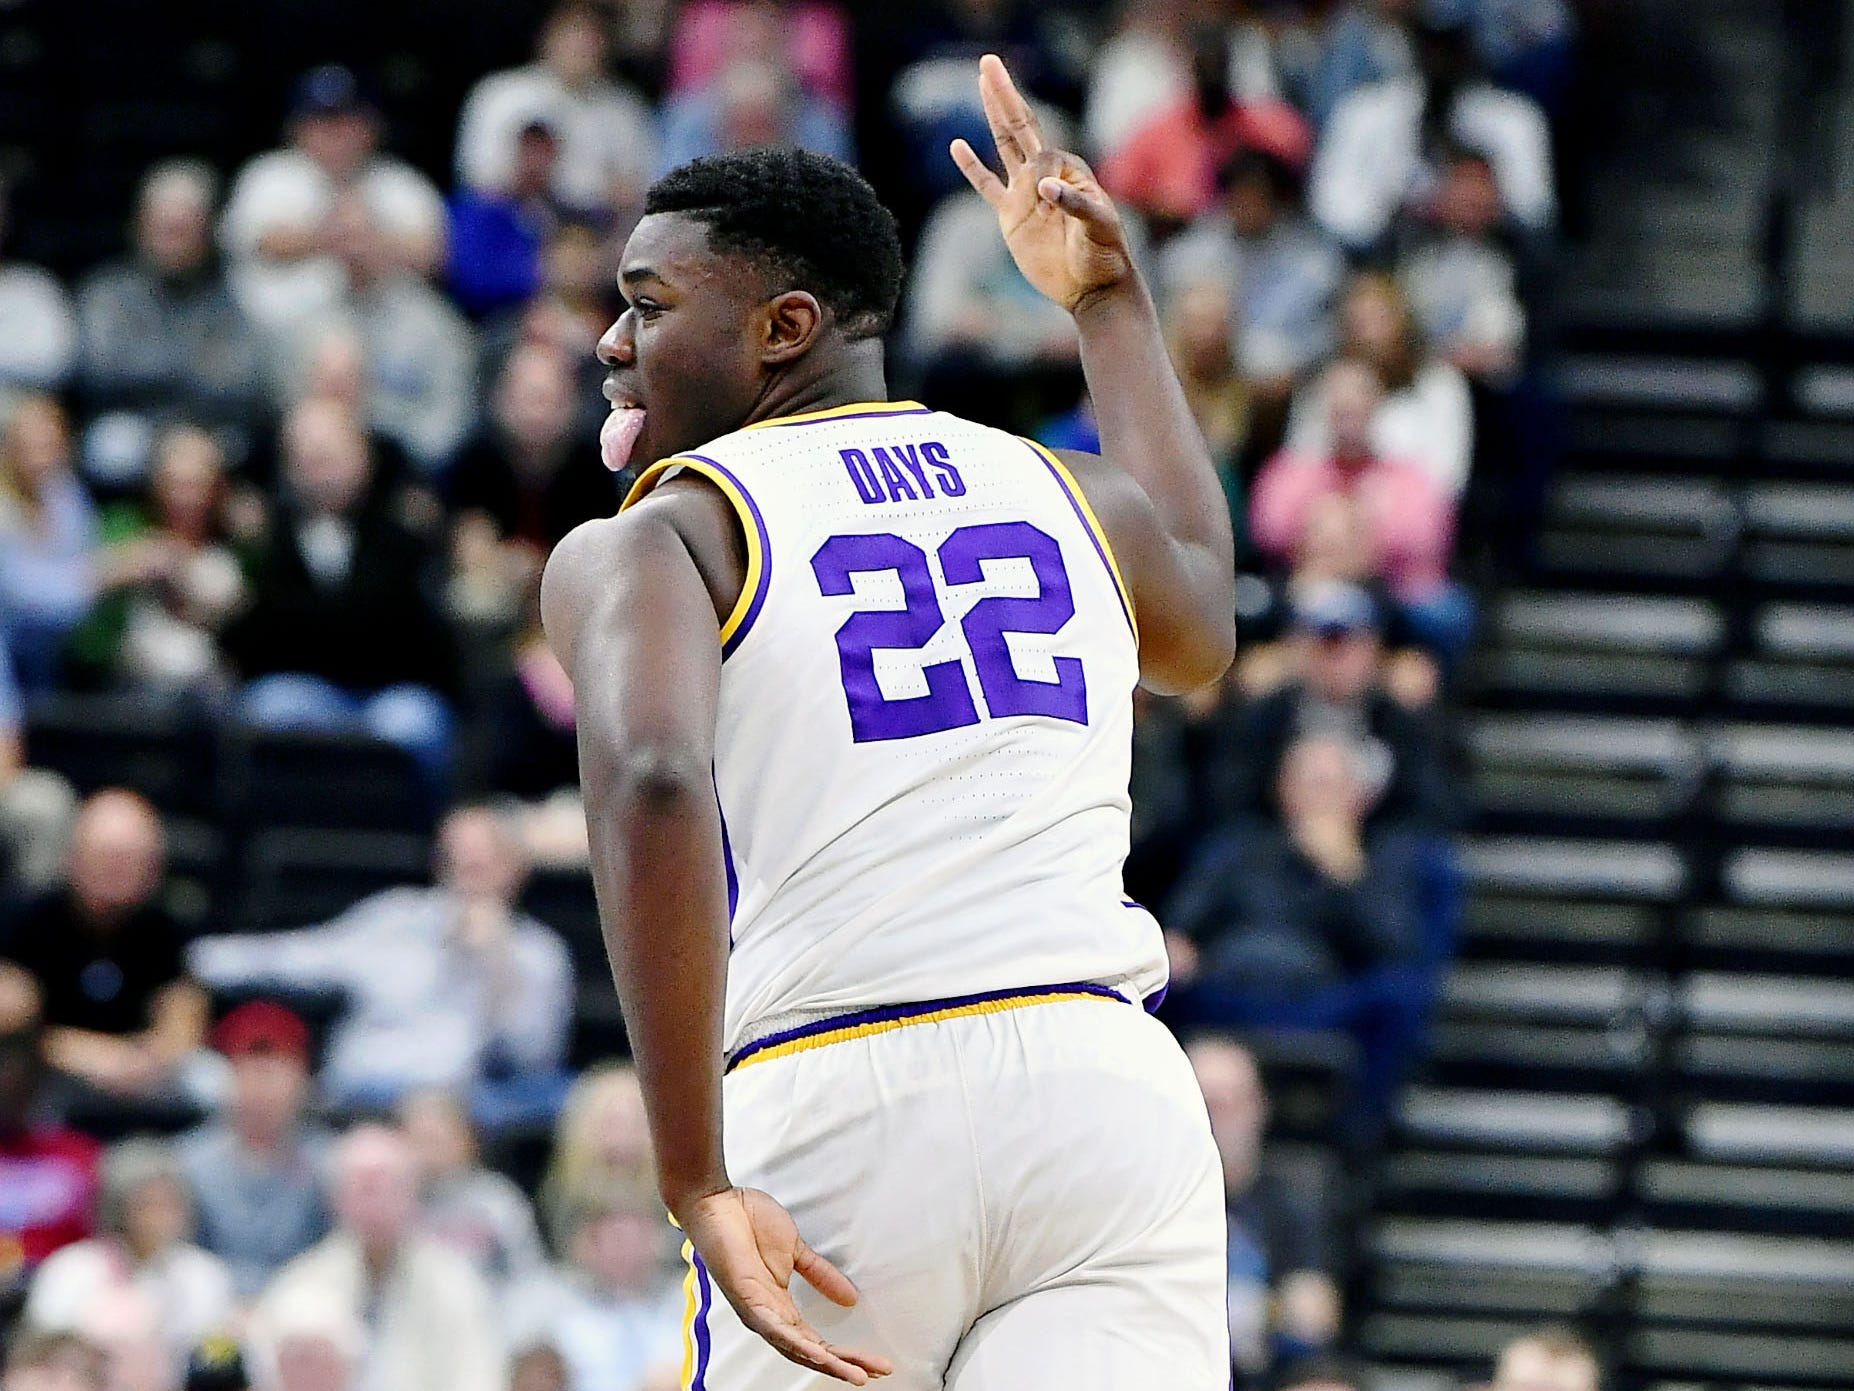 Mar 23, 2019; Jacksonville, FL, USA; LSU Tigers forward Darius Days (22) reacts after making a basket against the Maryland Terrapins during the first half in the second round of the 2019 NCAA Tournament at Jacksonville Veterans Memorial Arena. Mandatory Credit: John David Mercer-USA TODAY Sports